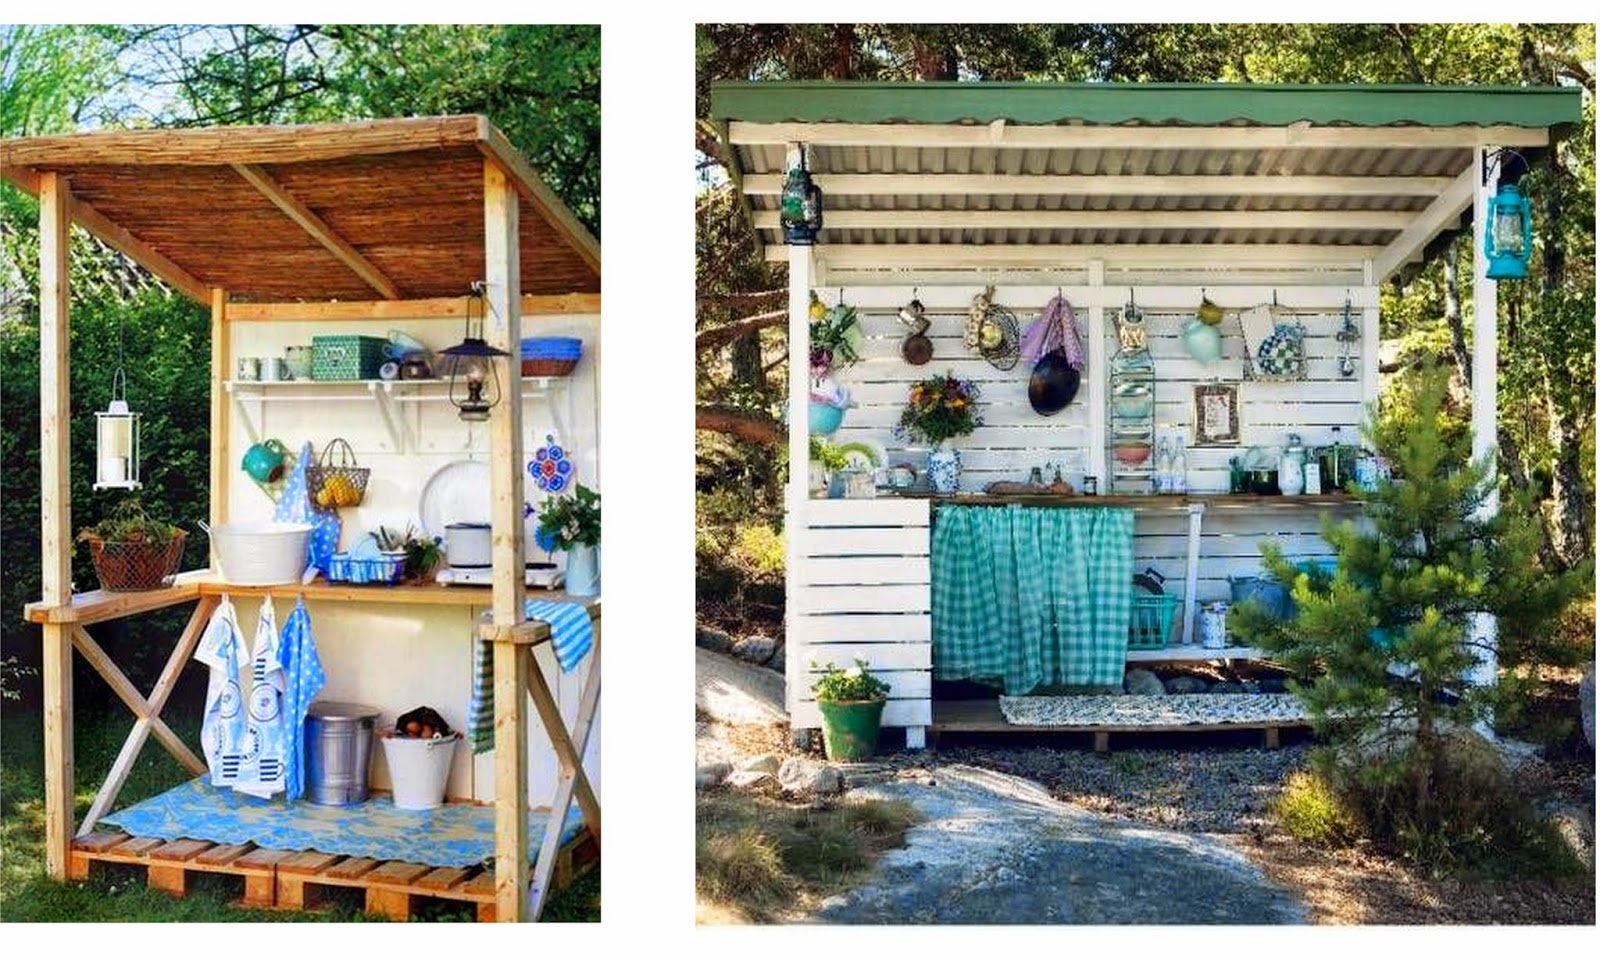 summer kitchens moen faucets kitchen gypsy yaya bohemian outdoor